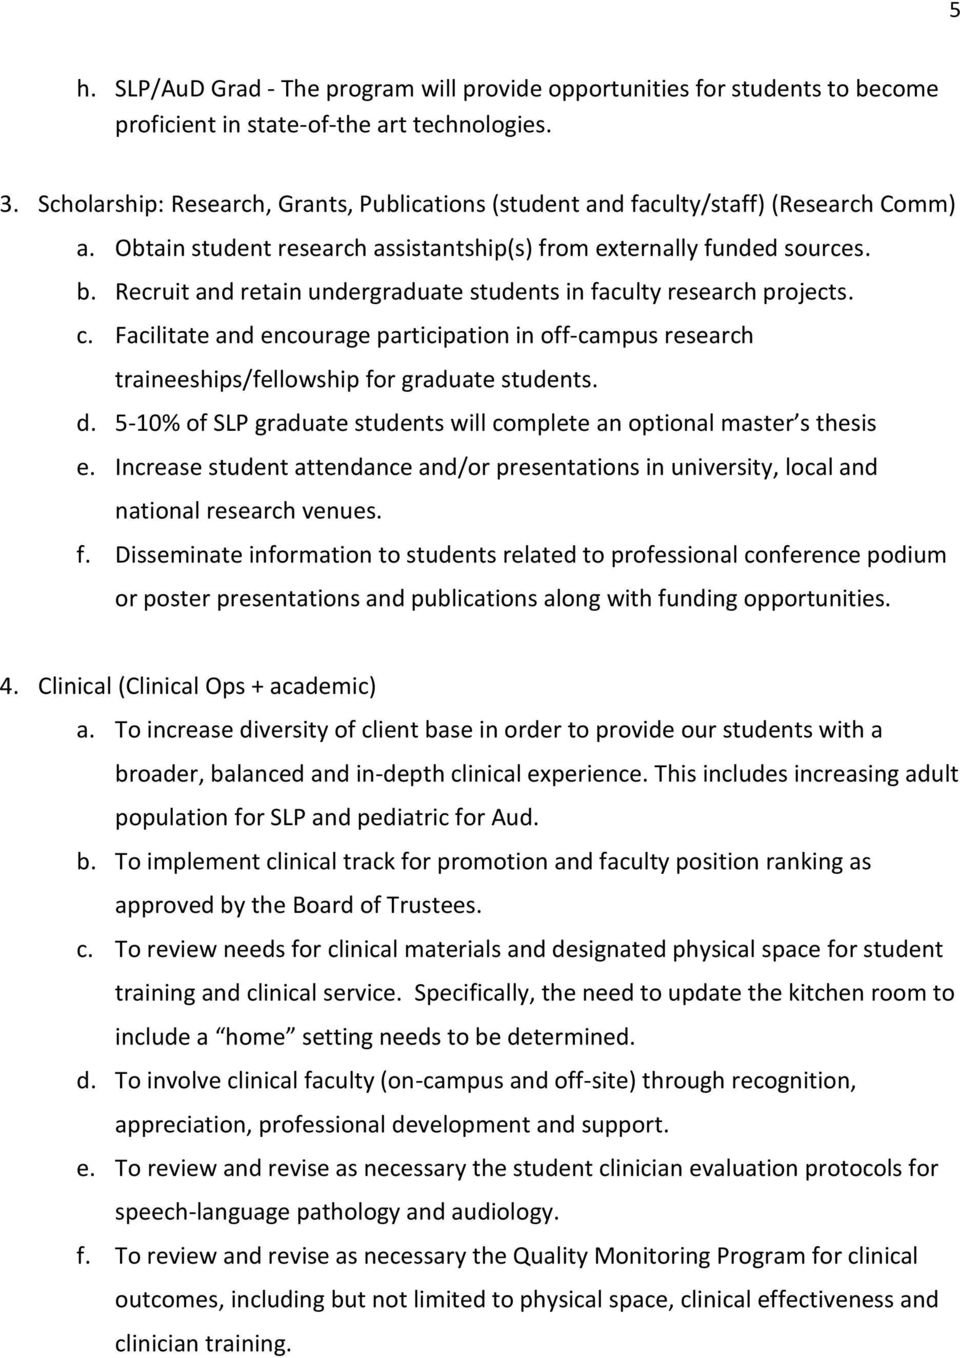 Recruit and retain undergraduate students in faculty research projects. c. Facilitate and encourage participation in off-campus research traineeships/fellowship for graduate students. d.